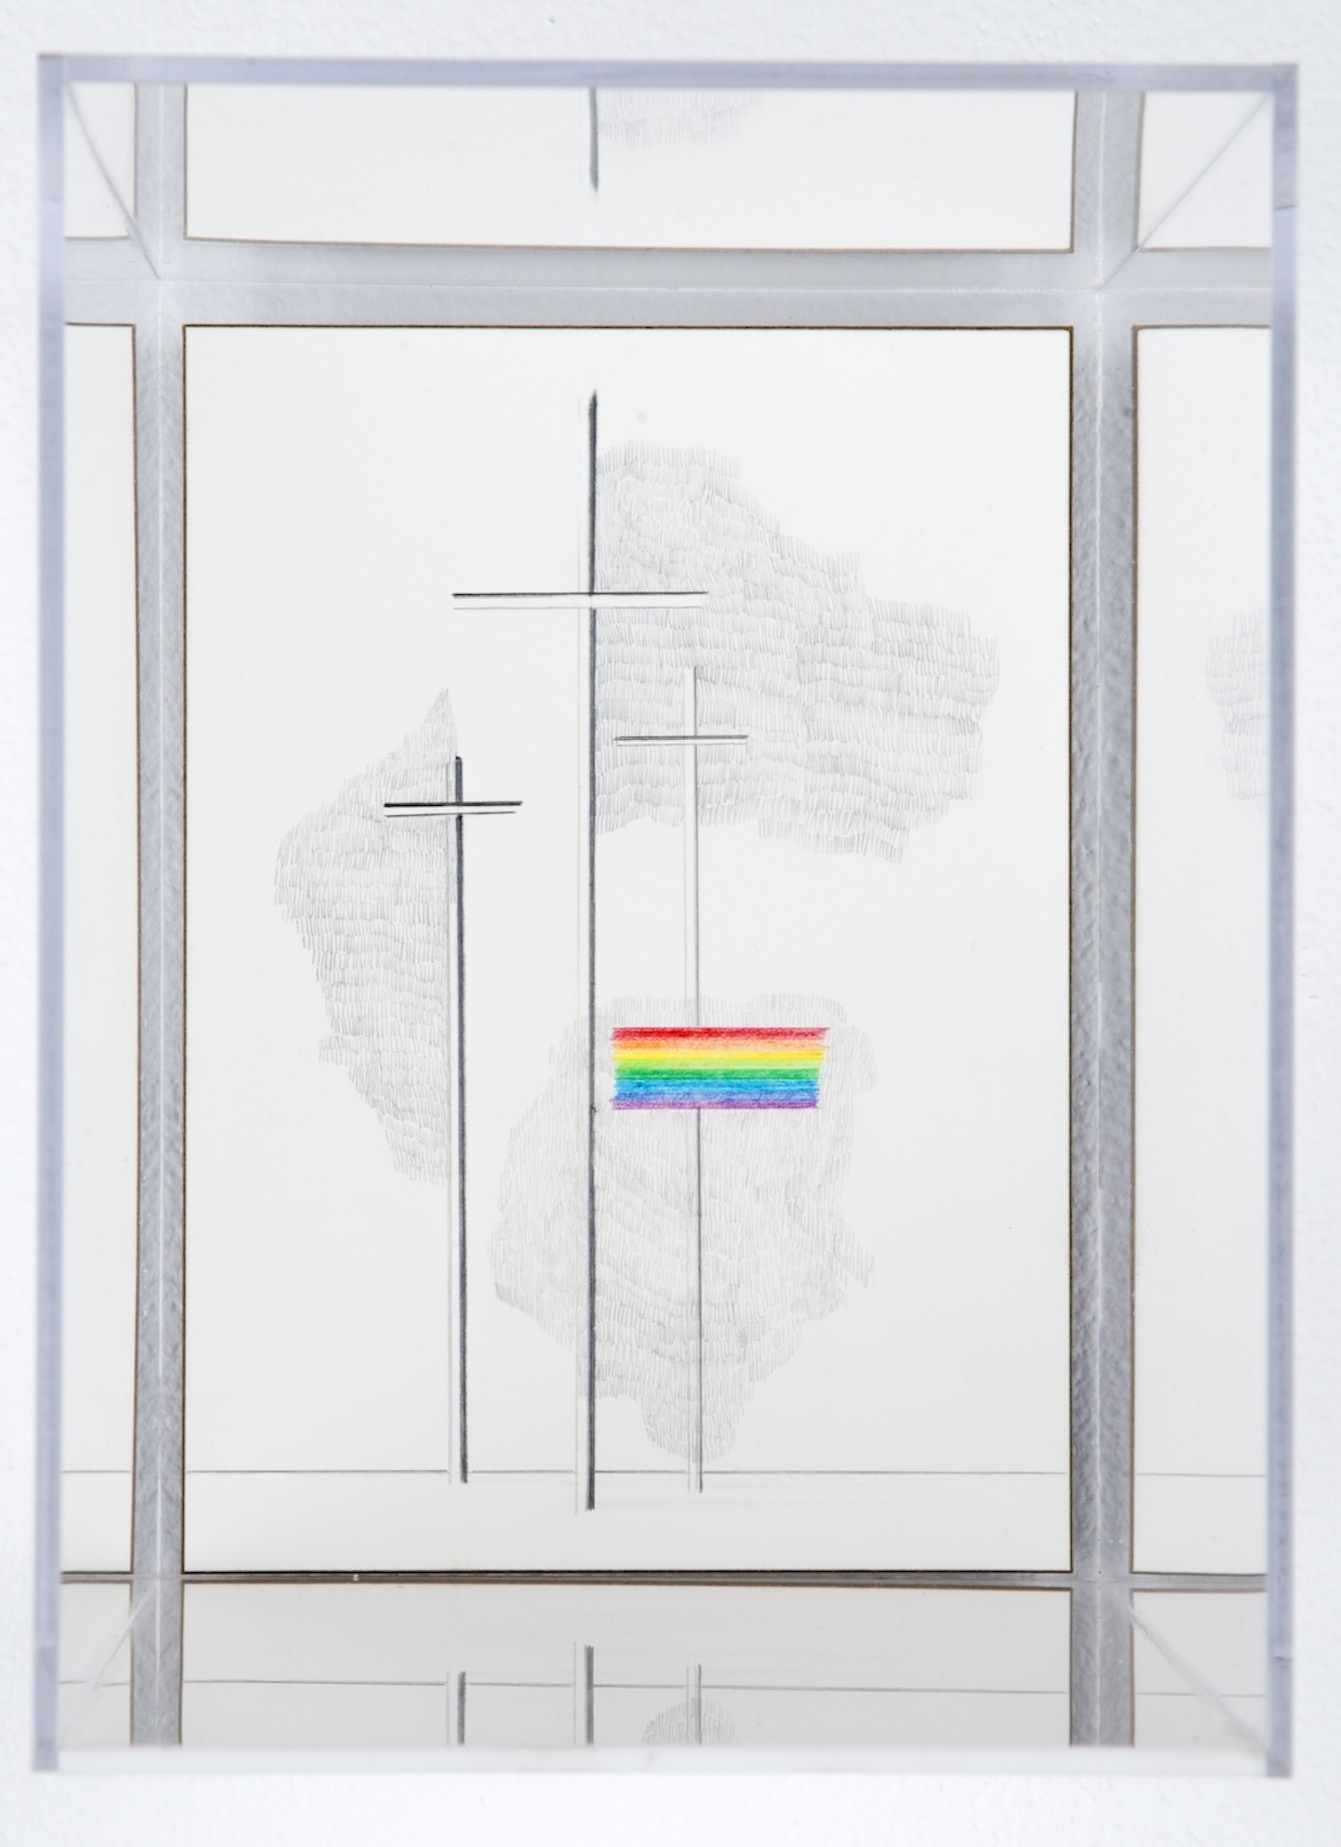 GOD'S COVENANT WITH HIMSELF IN A PRISM 02  colored pencil on clayboard, plexiglass  12in. x 5in. x 7in.